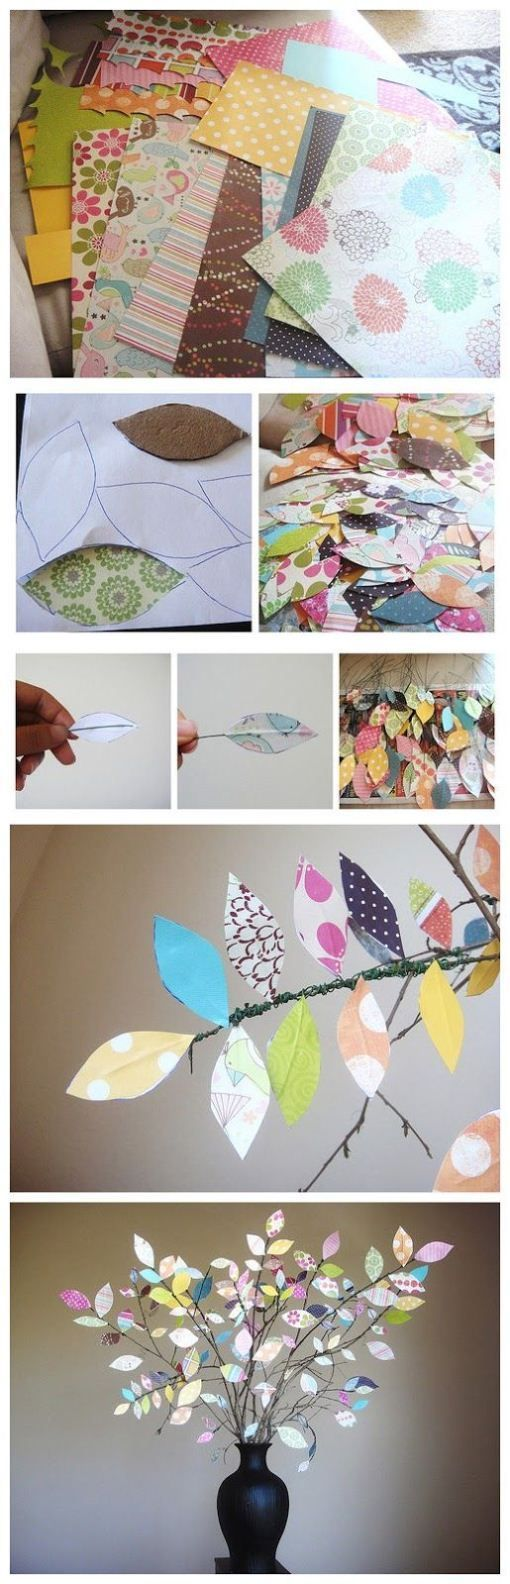 Branches of scrap book paper leafs diy y manualidades pinterest diy scrapbook paper branches diy crafts craft ideas diy crafts do it yourself diy projects crafty do it yourself crafts solutioingenieria Choice Image